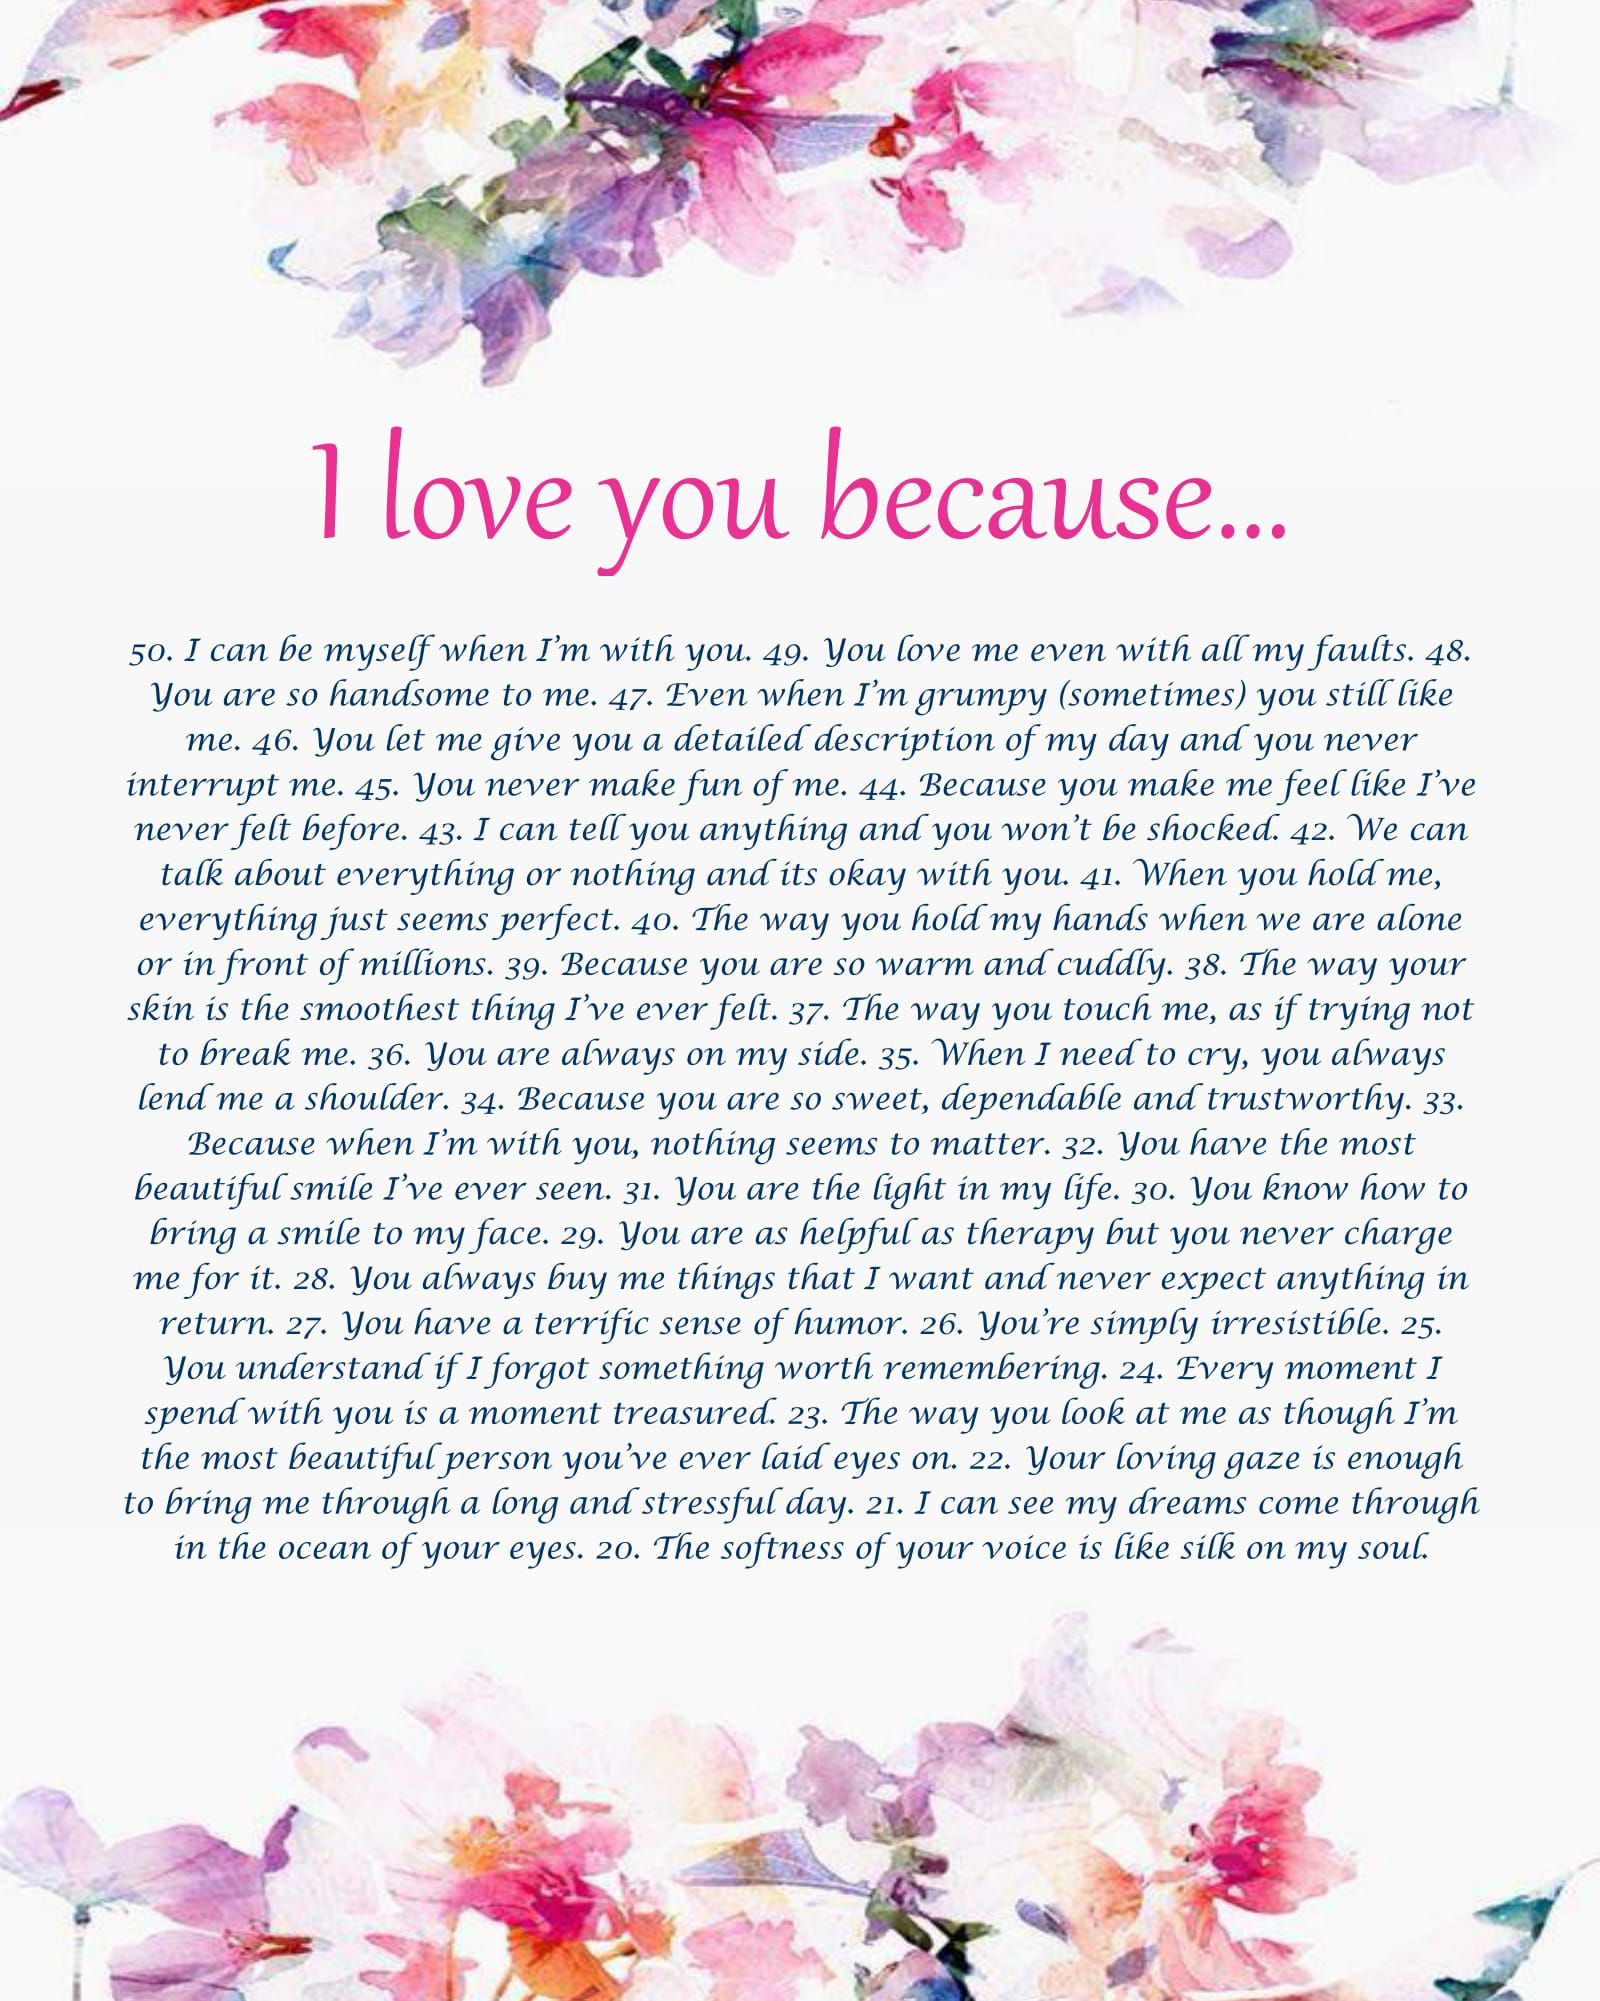 love gift present for anniversary personalized reasons you her girlfriend boyfriend because wife